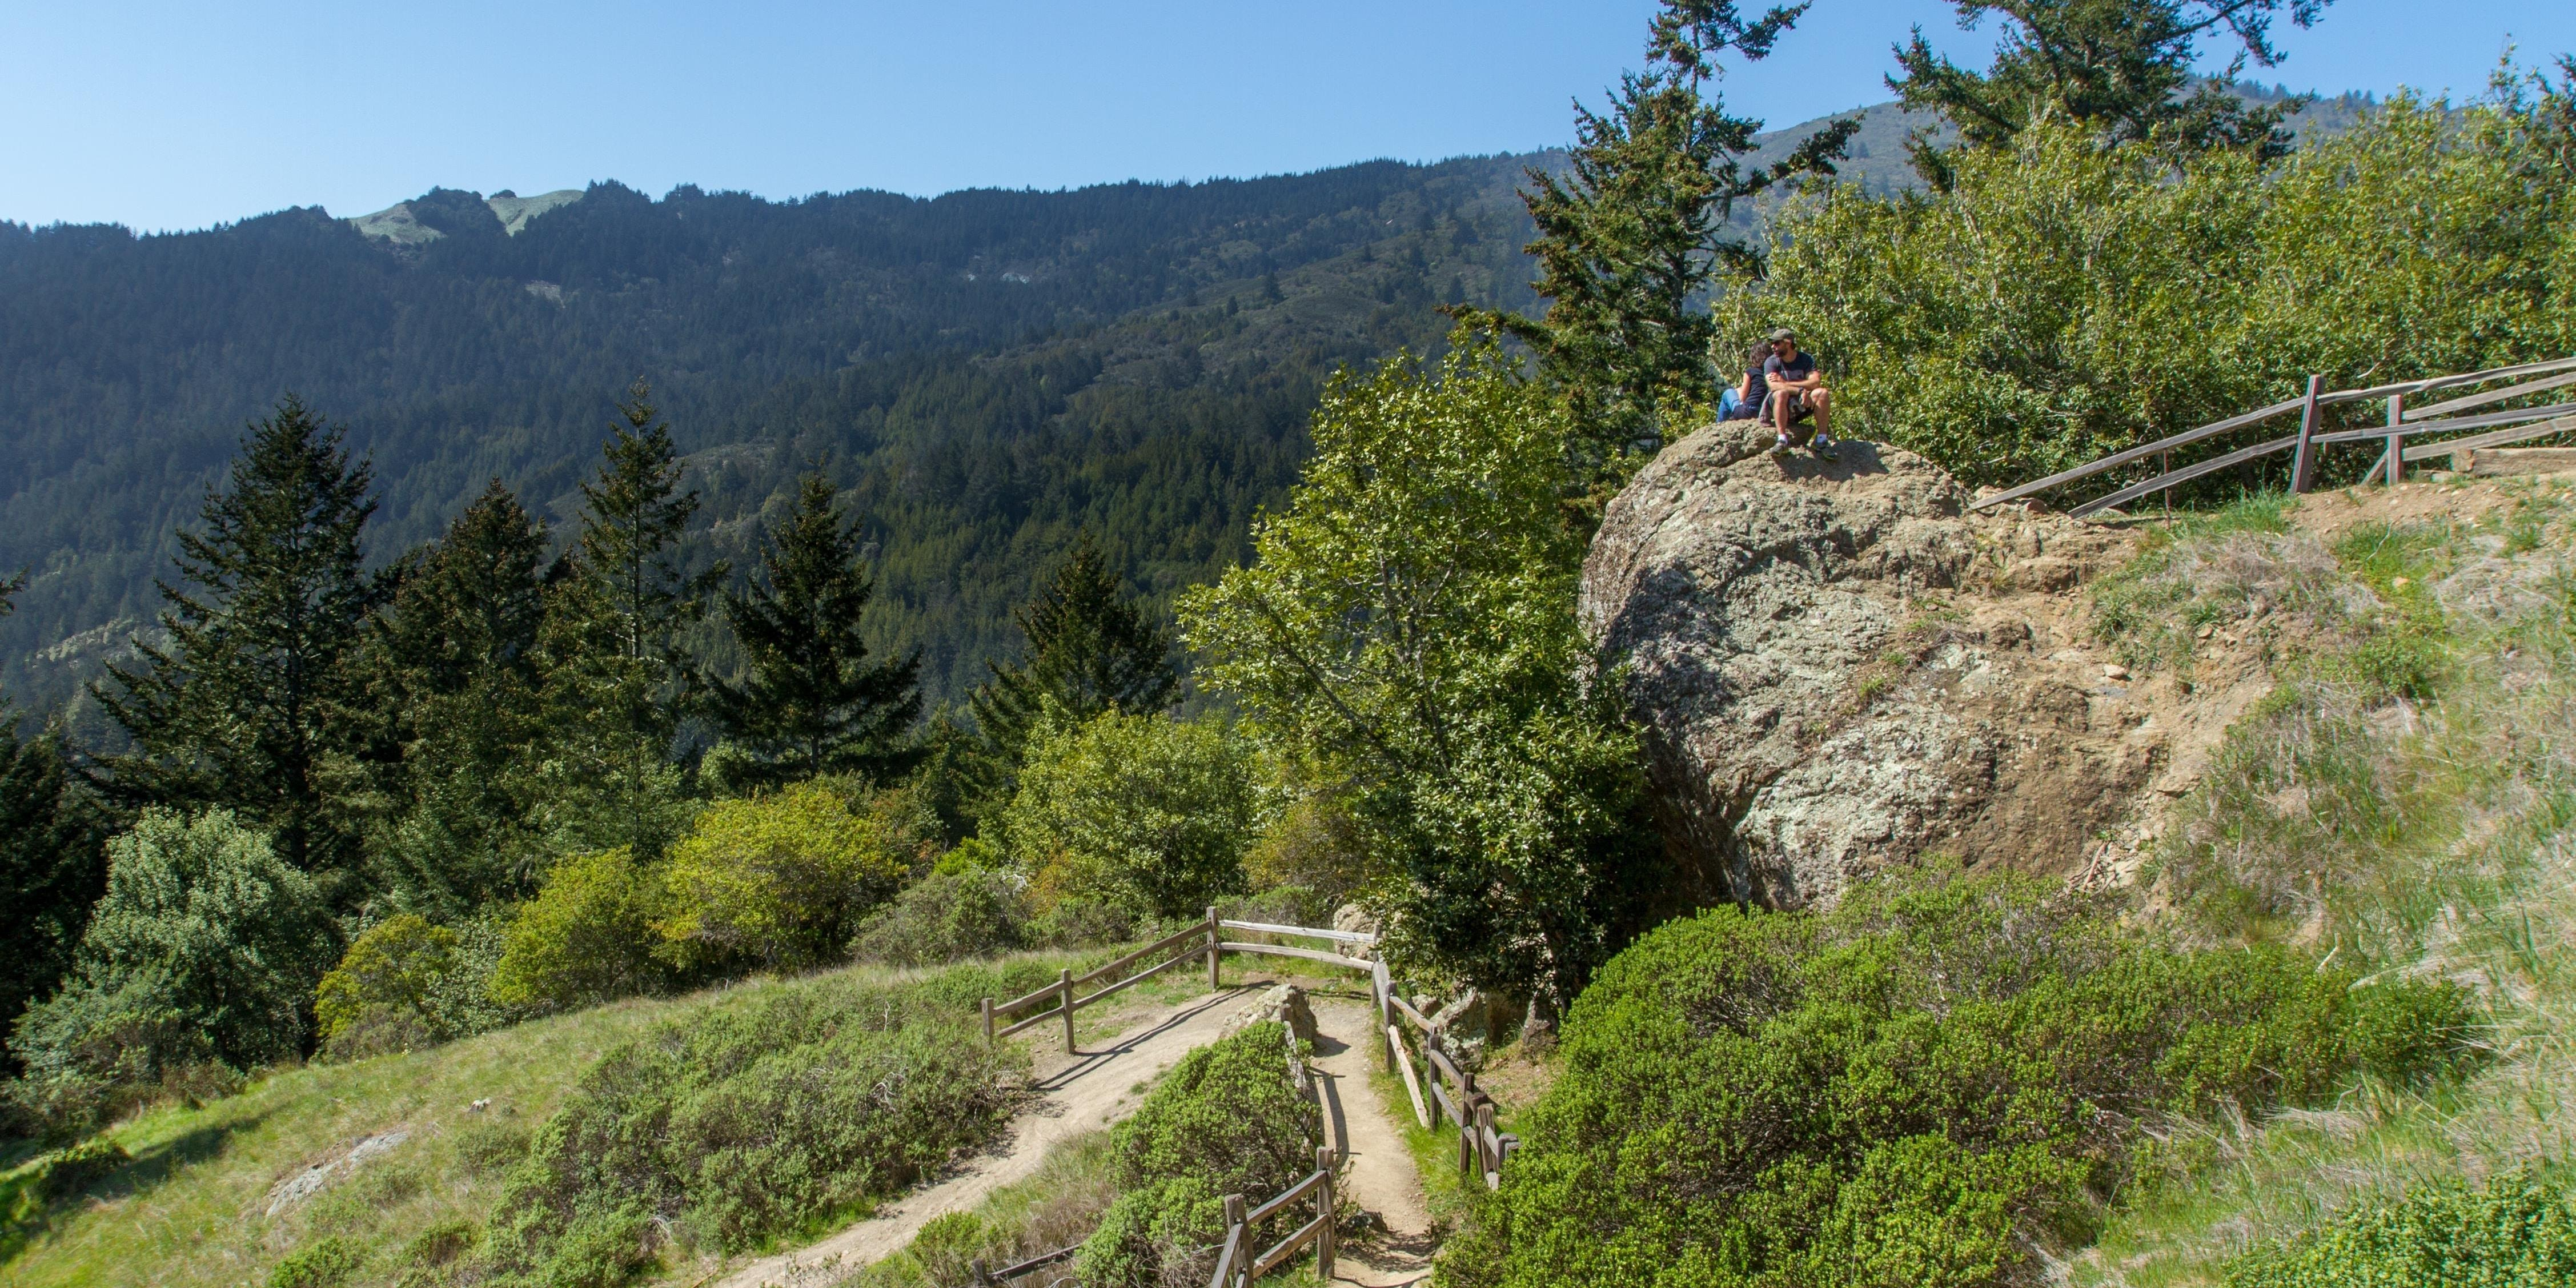 Panoramic Trail meets the Canopy View Trail at this rock